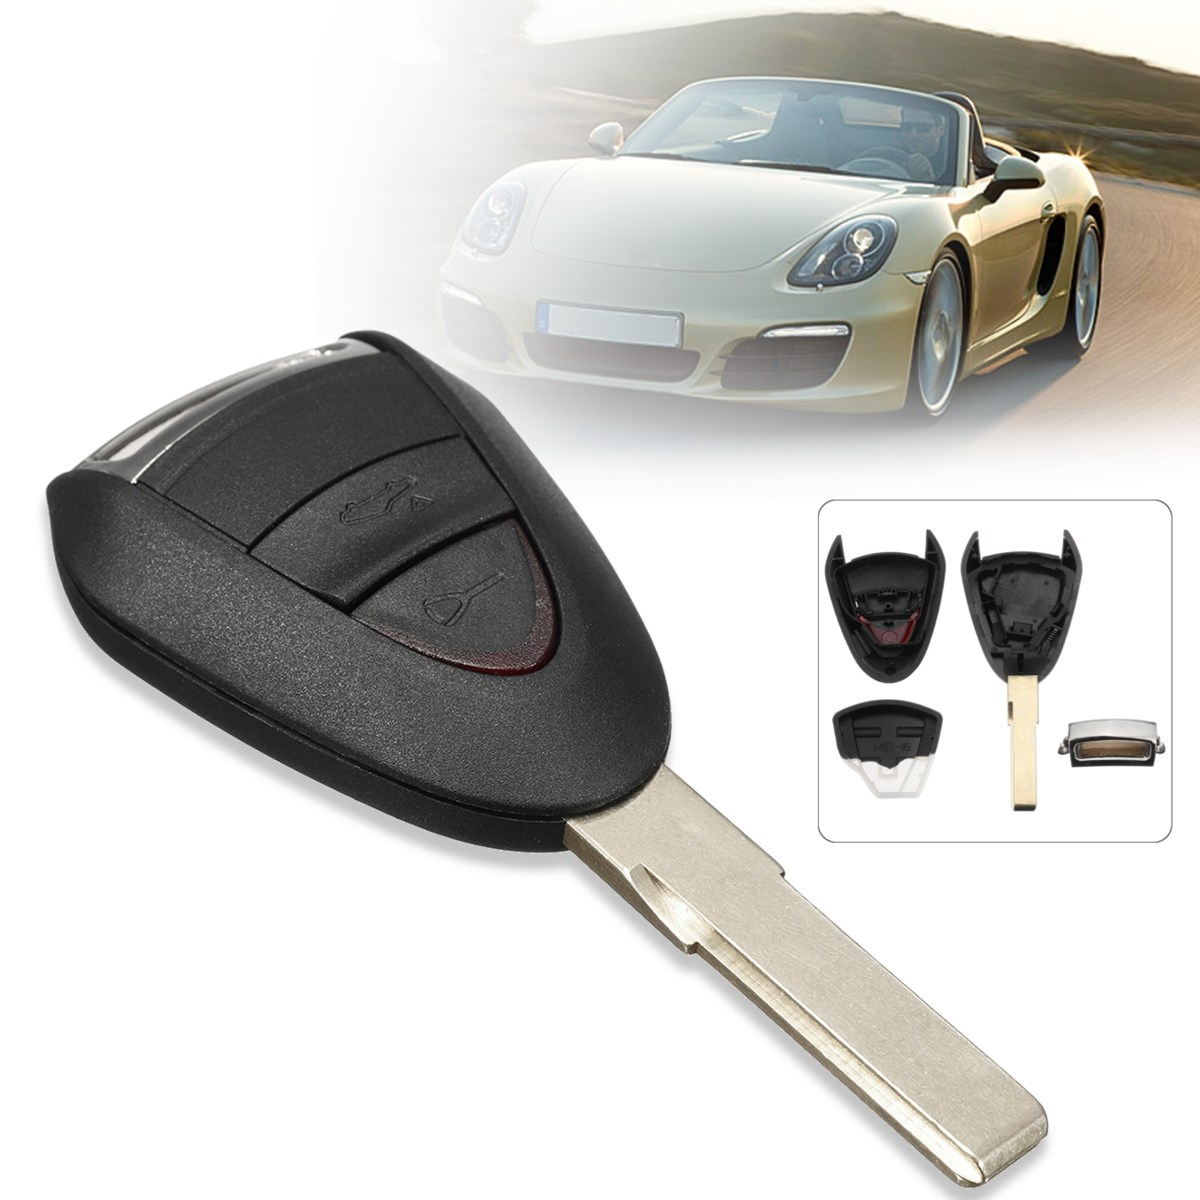 2 Buttons Lock Unlock Car Remote Key Fob Case Shell Uncut Blade For Porsche/Carrera 911 997 Boxster S 2S 4S Turbo